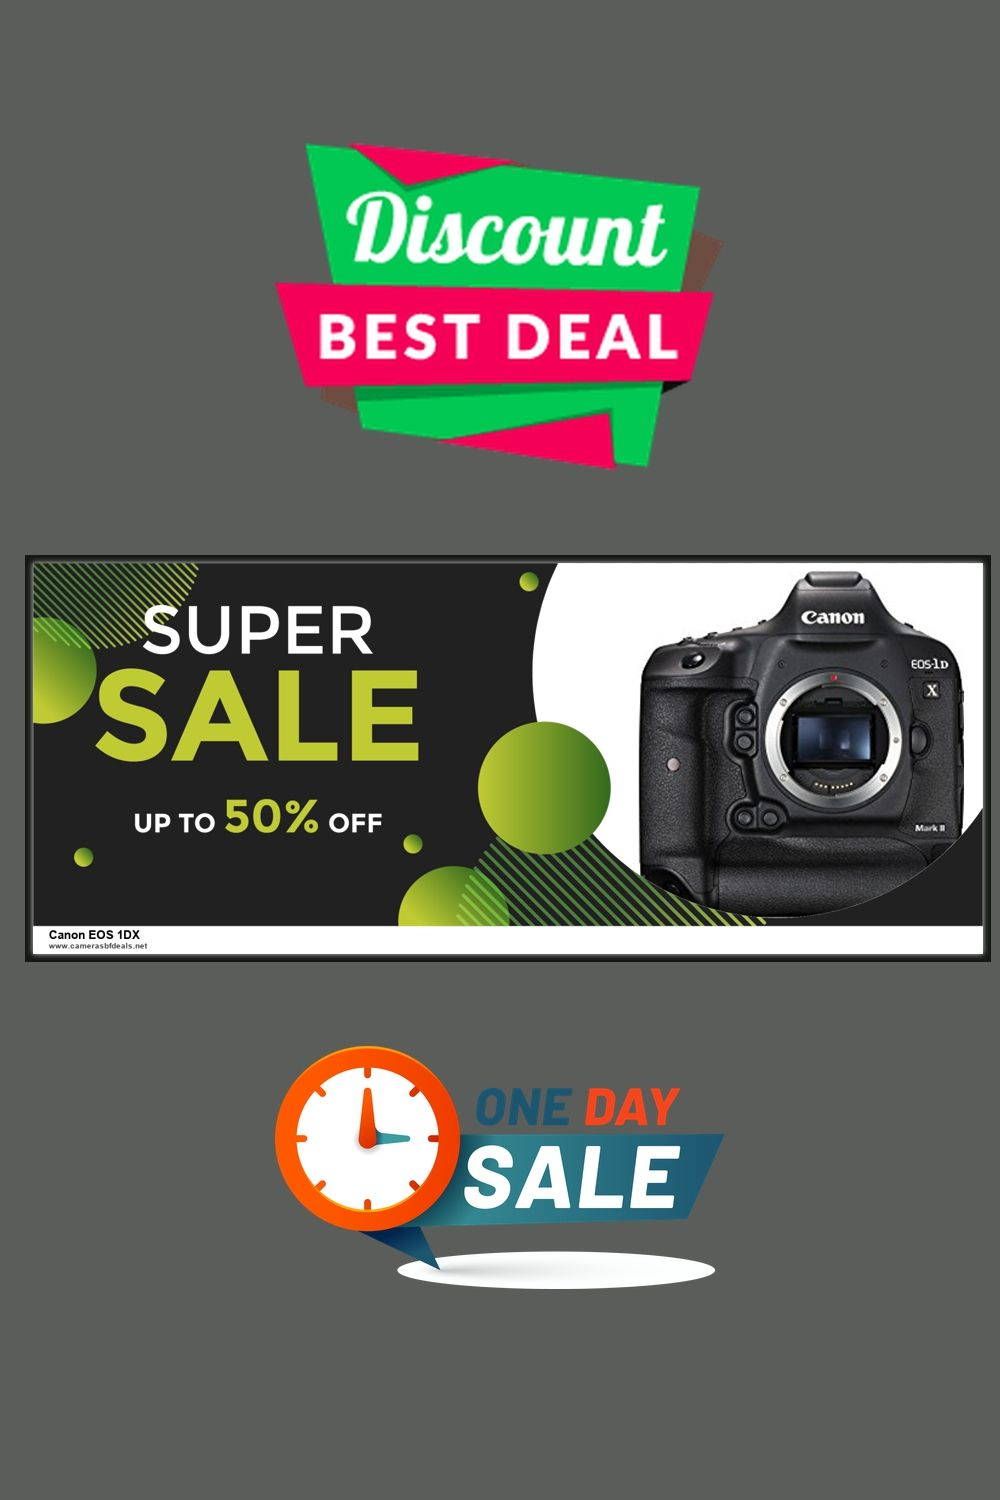 Top 5 Canon Eos 1dx Black Friday Sales Deals 2020 In 2020 Eos Black Friday Canon Eos